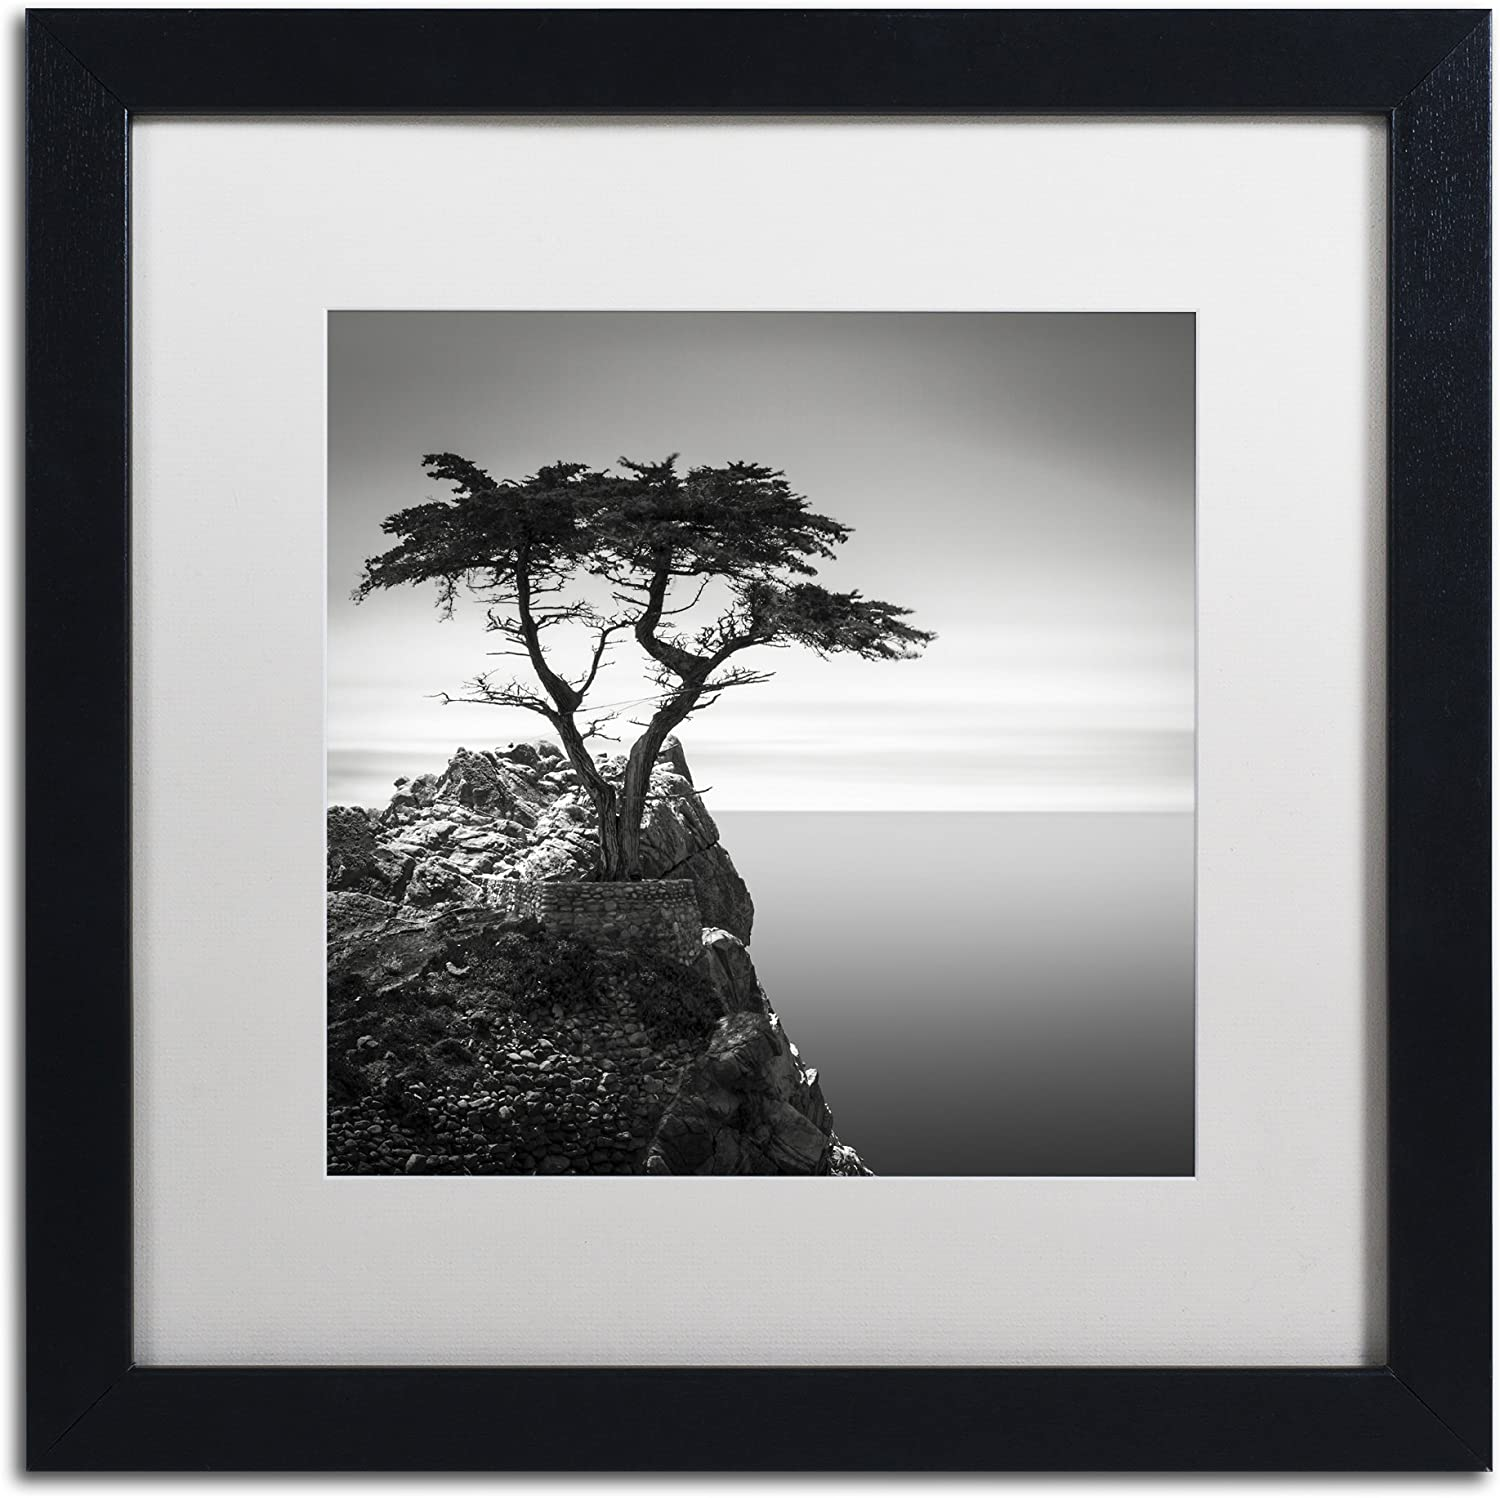 "The Lone Cypress by Dave MacVicar Frame, 16 by 16"", White Matte"